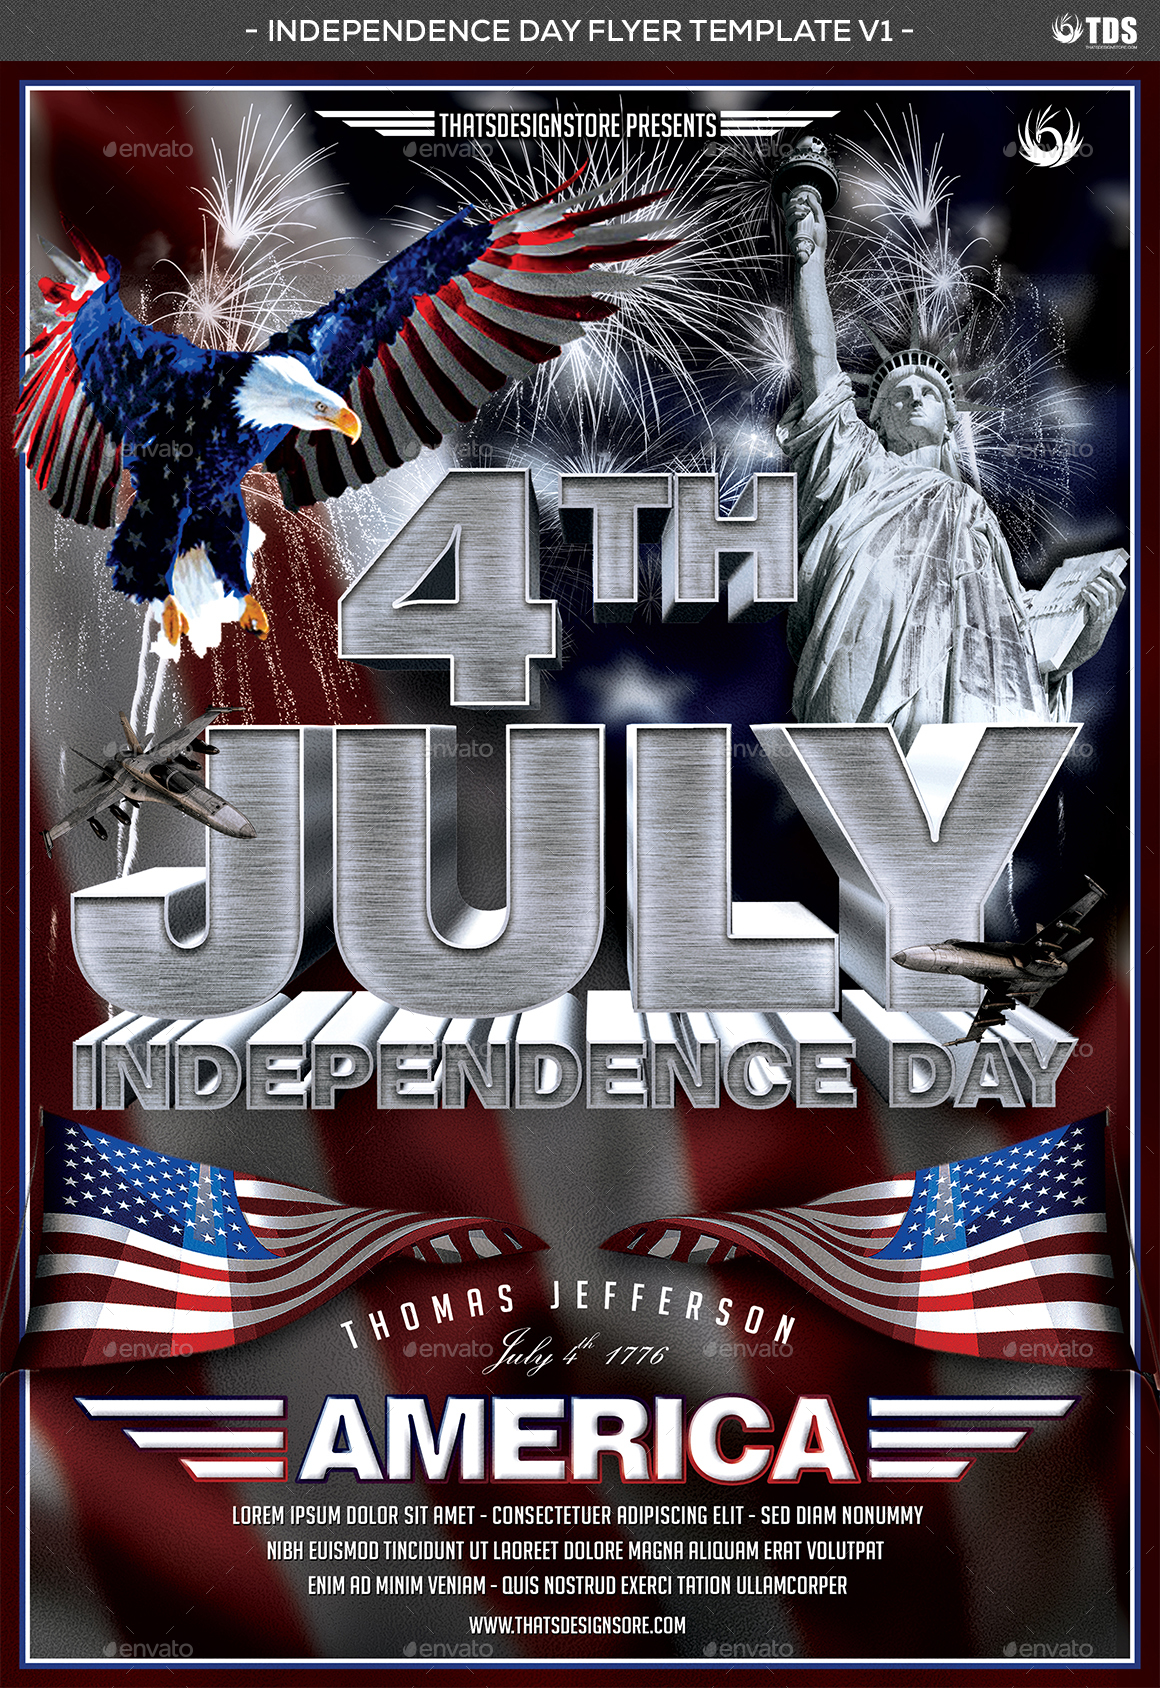 July 4 Independence Day Flyer Template V1 by lou606 | GraphicRiver